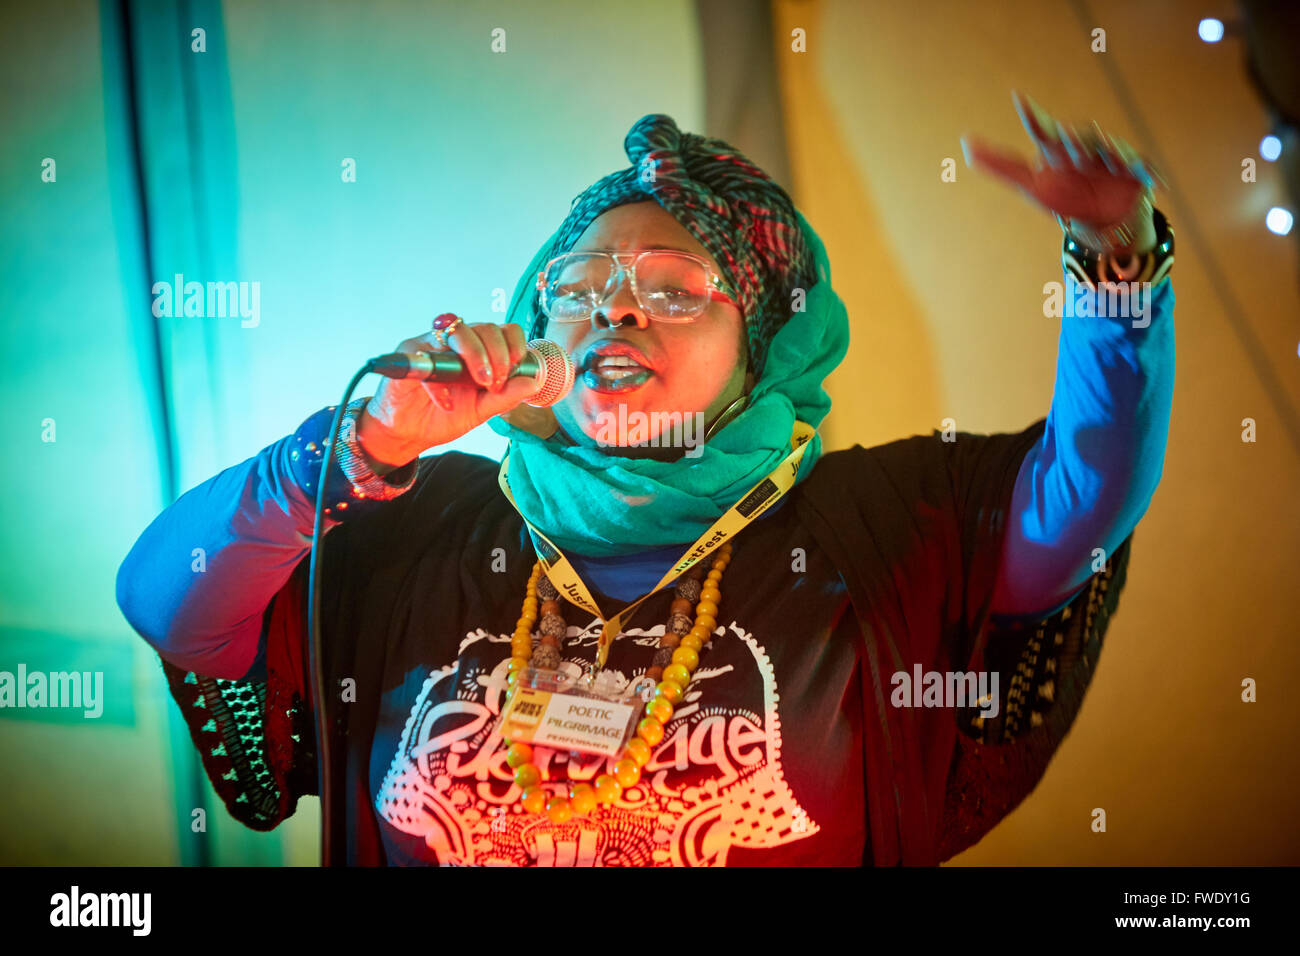 Poetic Pilgrimage performing on stage - Stock Image